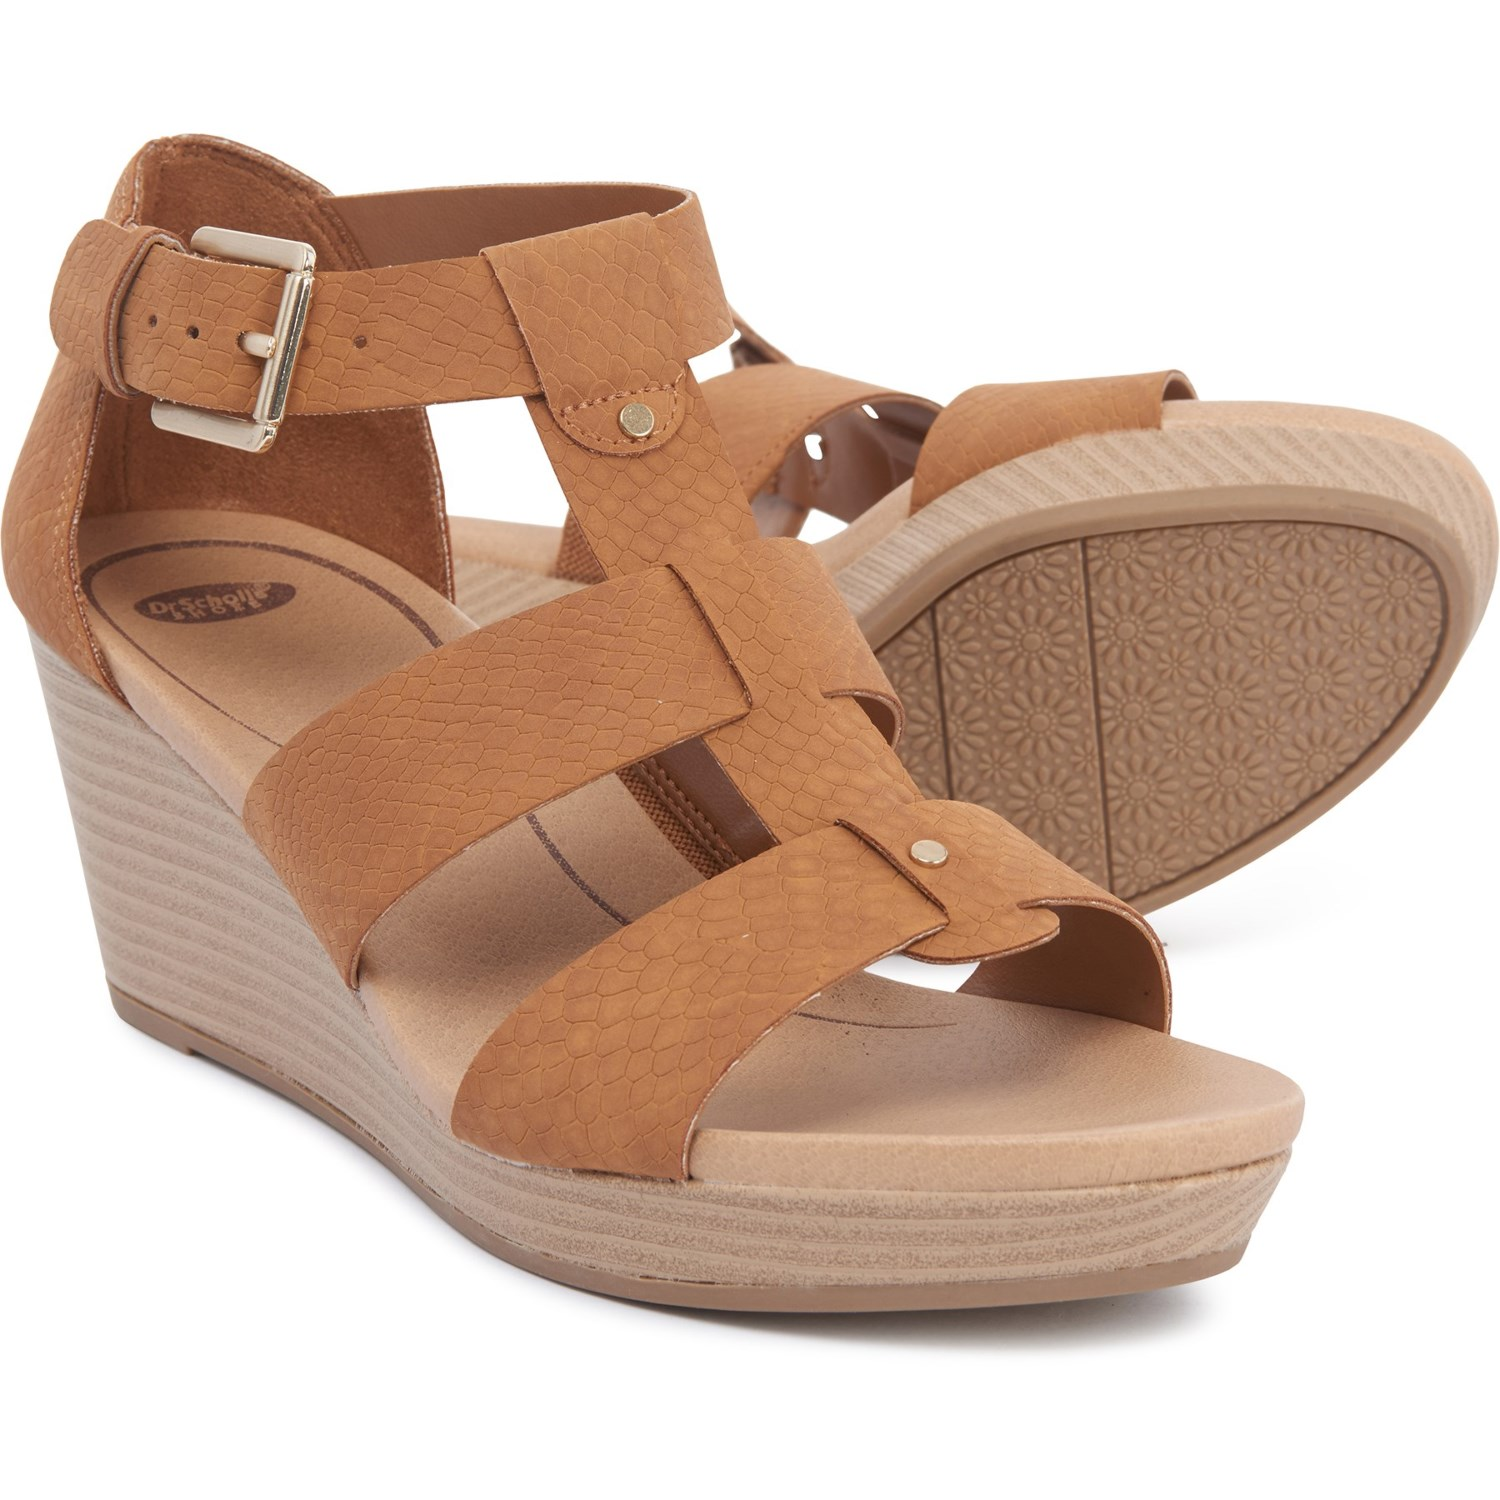 6c6dac92a58 Dr. Scholl's Babs Wedge Sandals (For Women)